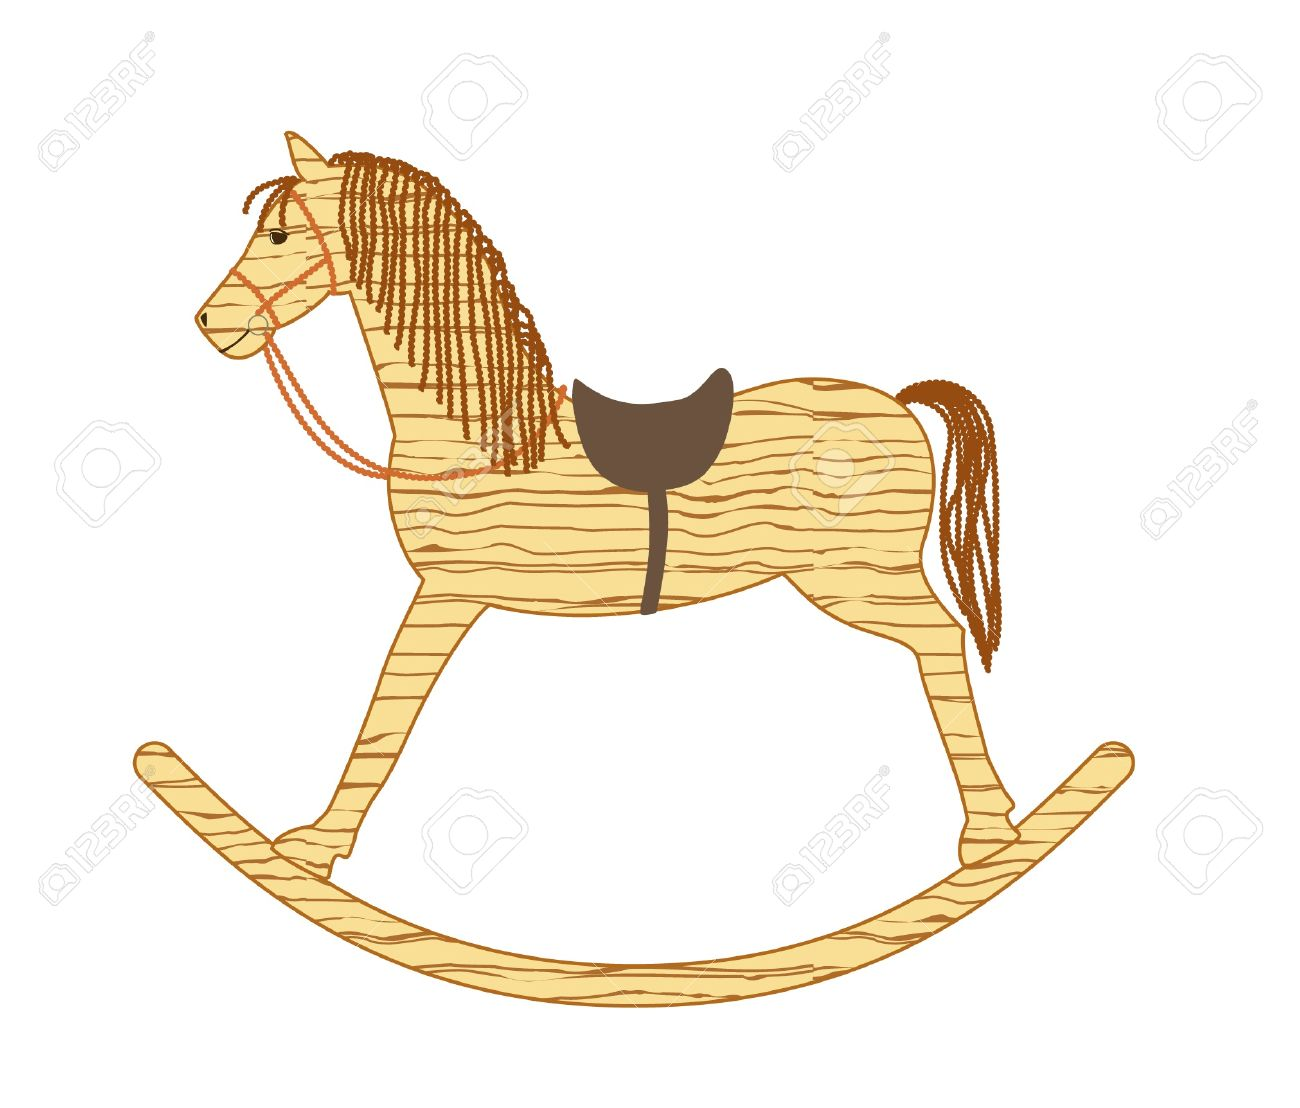 1300x1108 Wooden Rocking Horse Royalty Free Cliparts, Vectors, And Stock